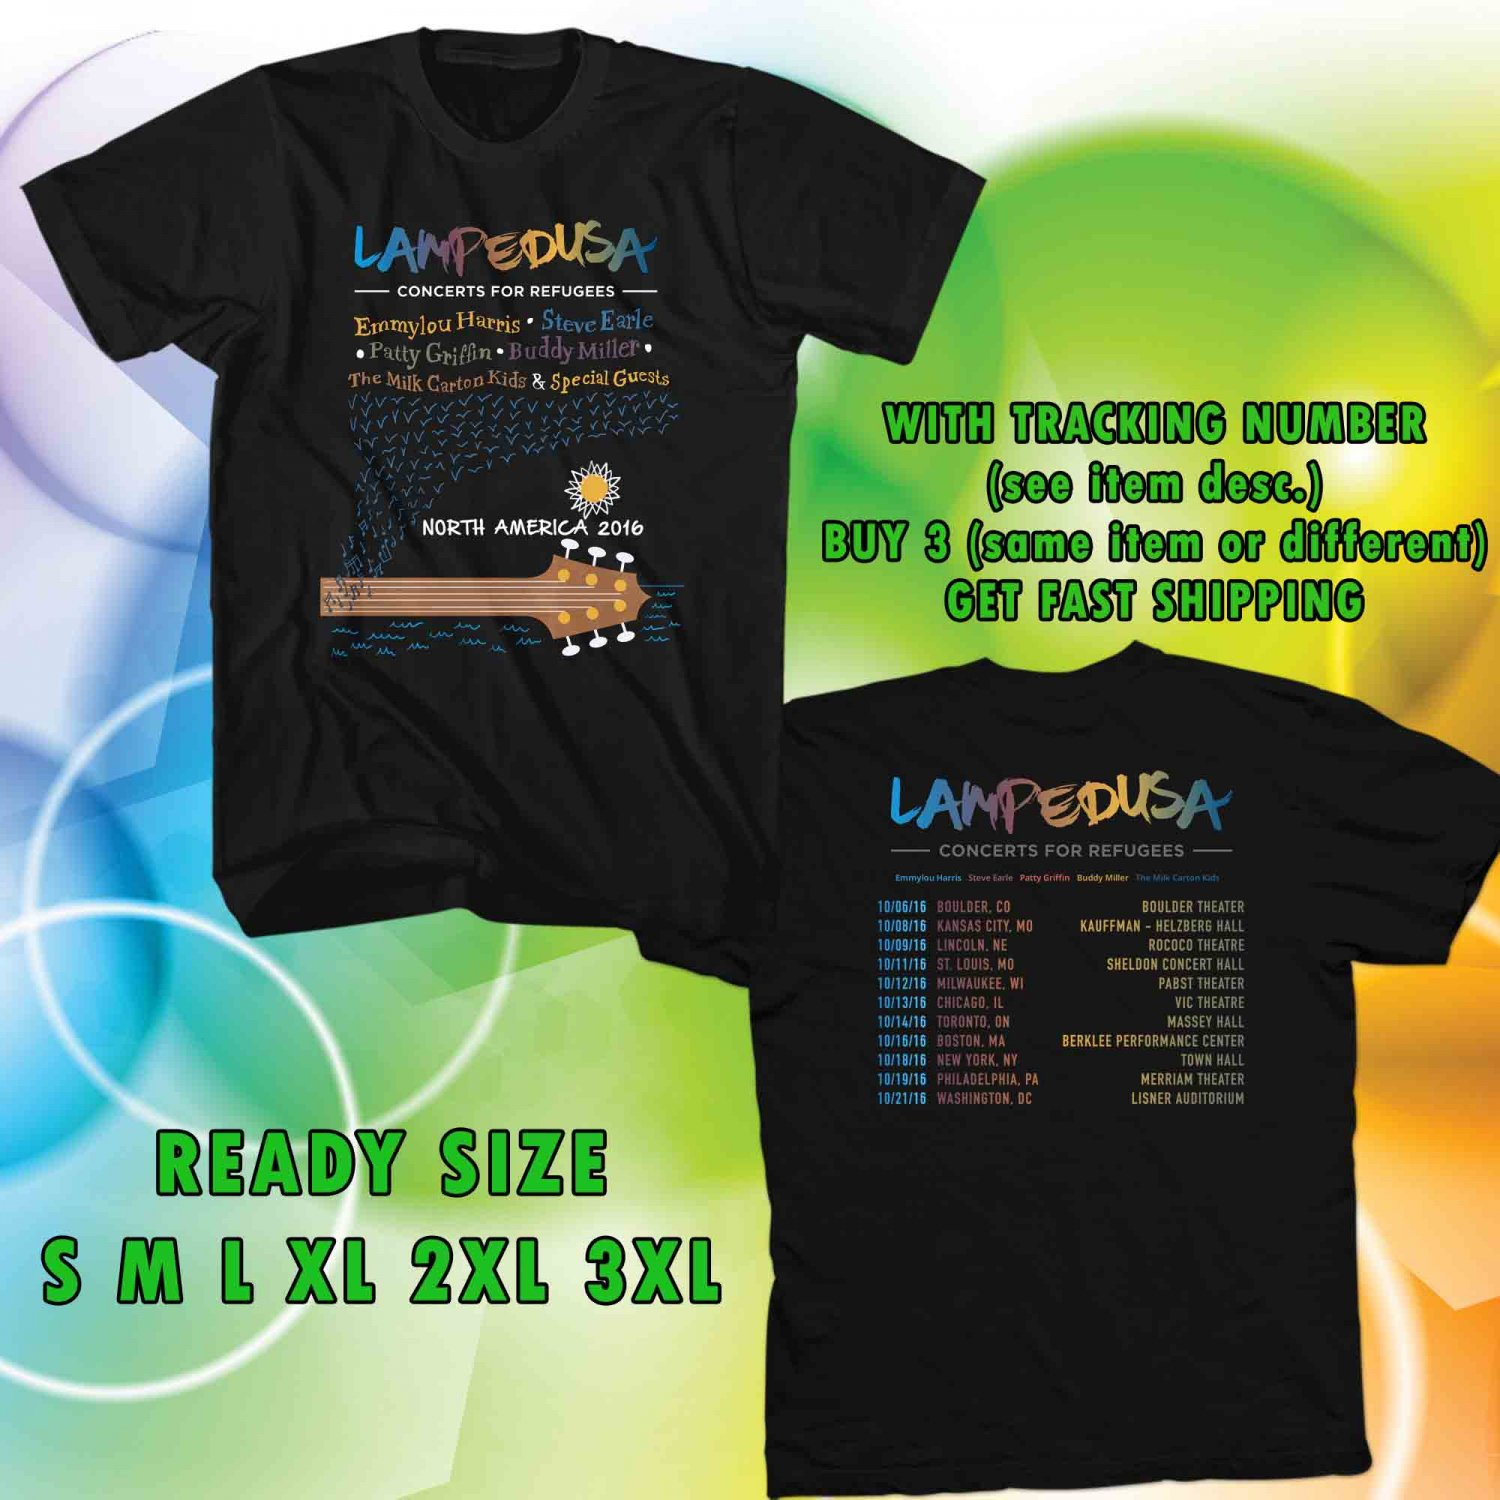 WOW LAMPEDUSA CONCERT FOR REFUGEES TOUR 2016 BLACK TEE S-3XL ASTR